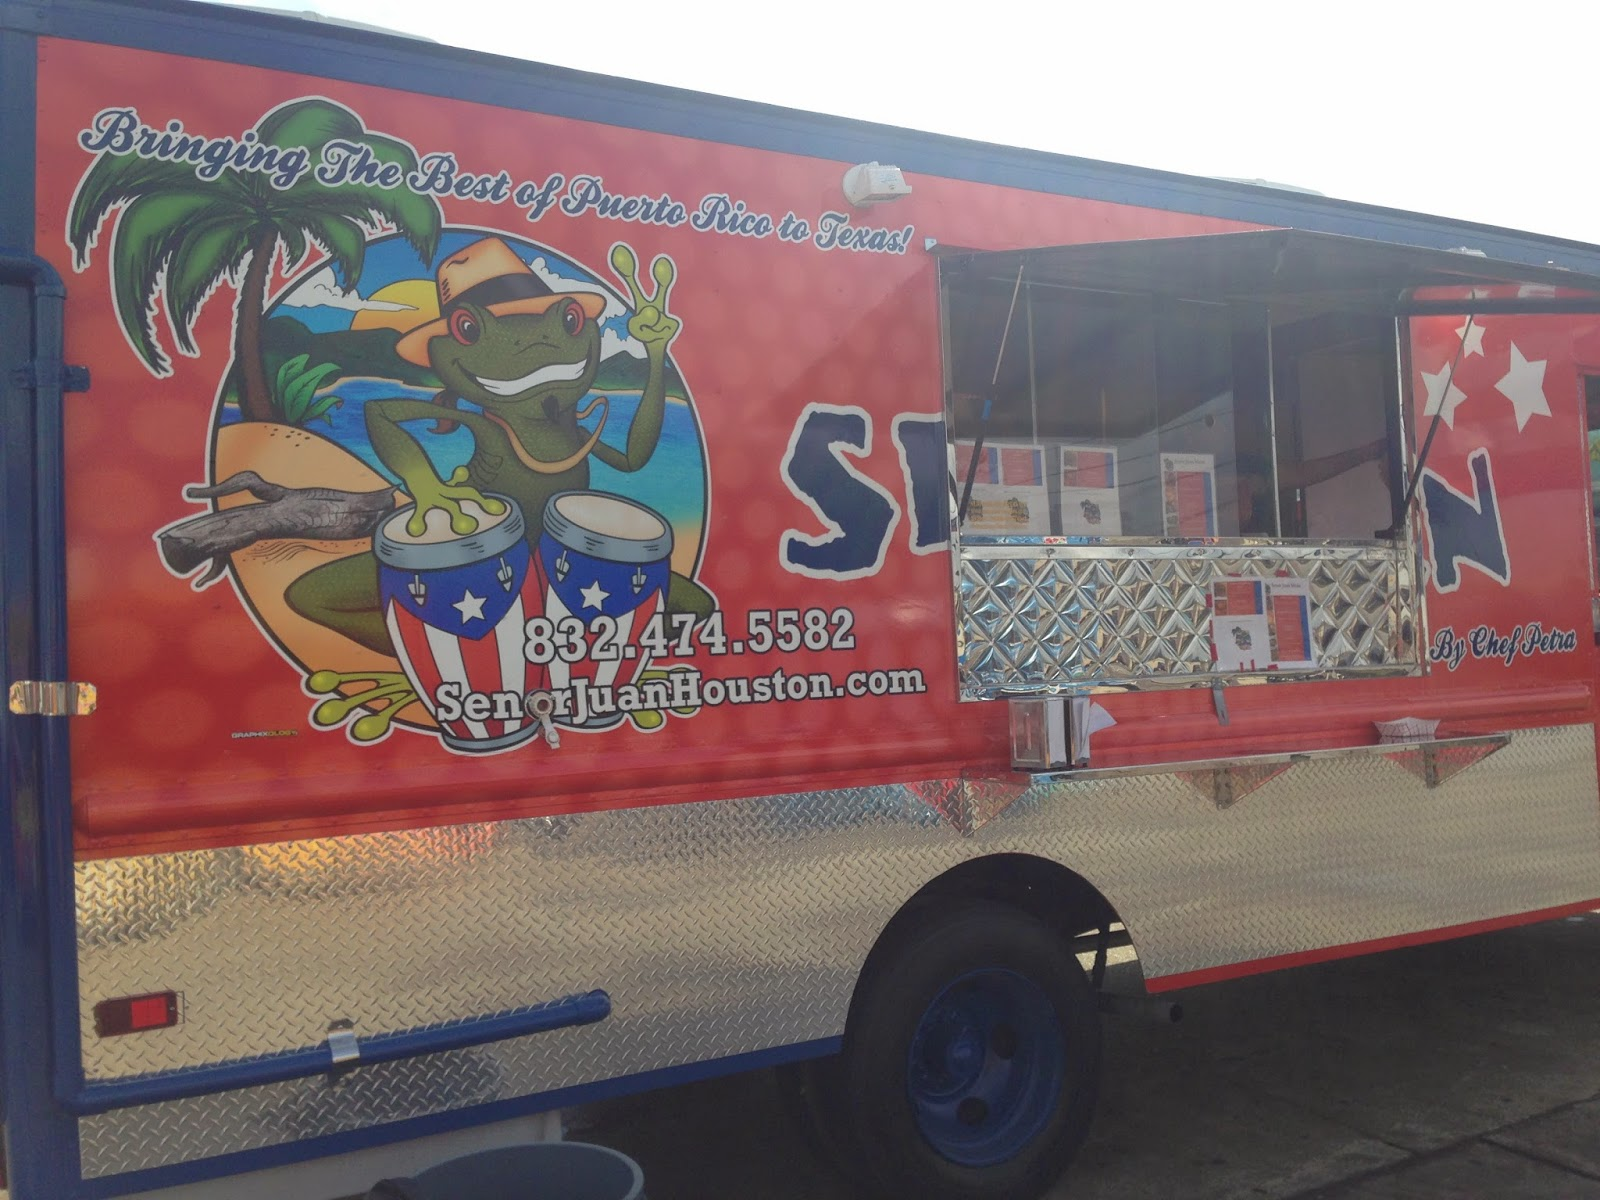 Senor Juan Food Truck Houston TX